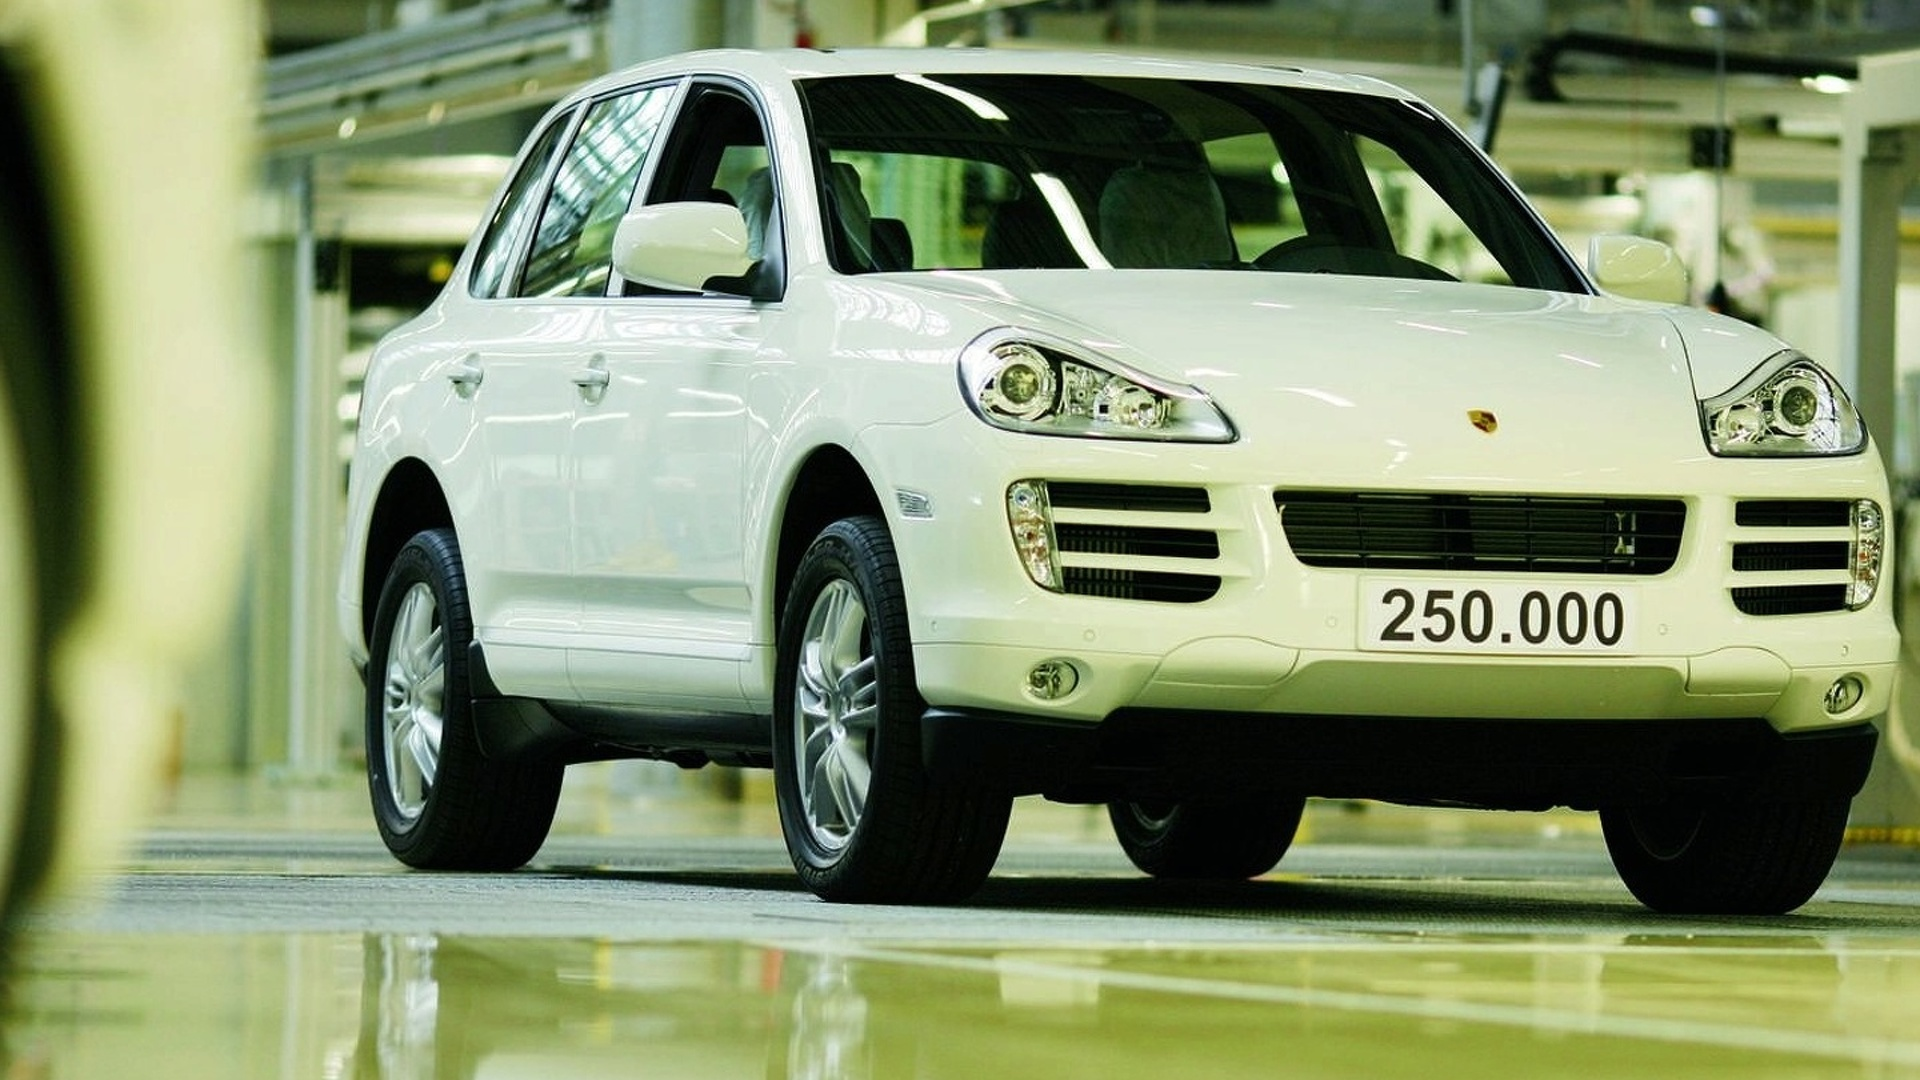 Porsche Sends its 250,000th Cayenne down the line